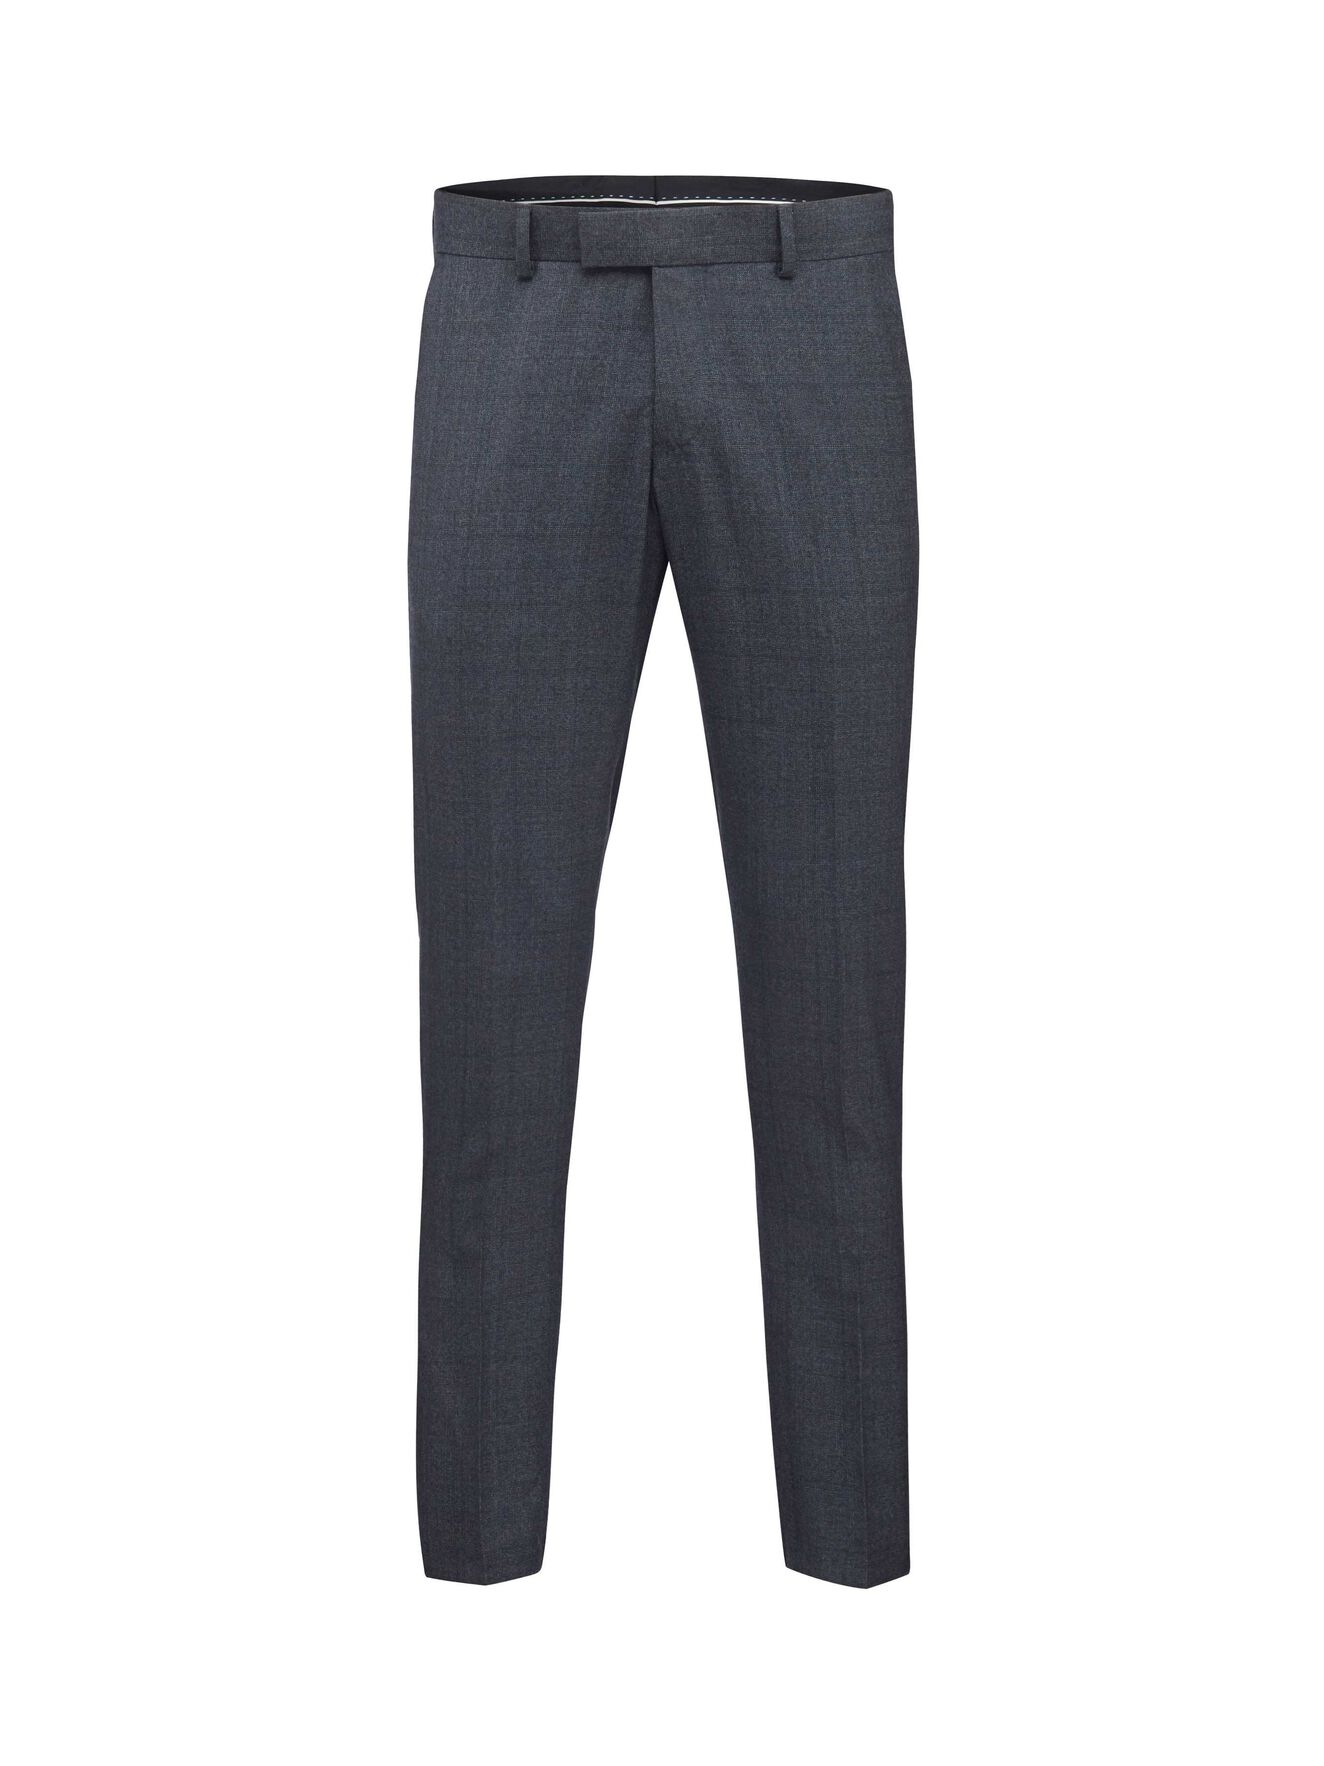 Gordon trousers in Celestial Blue from Tiger of Sweden